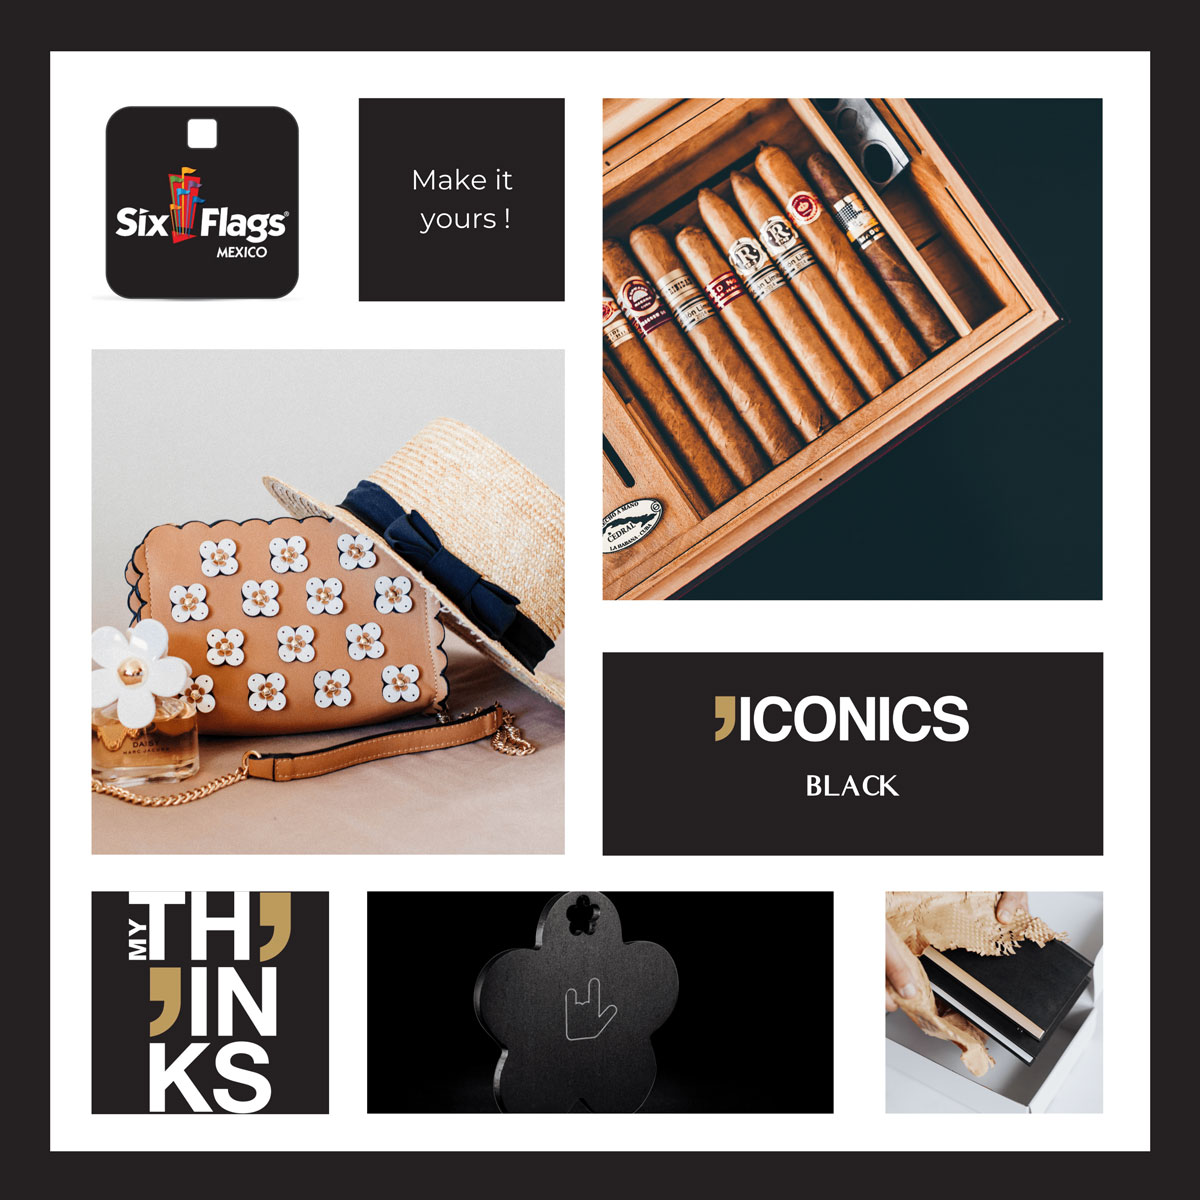 Mood board Iconics collection gifts in black color charm personalized for the amusement park and leather good market